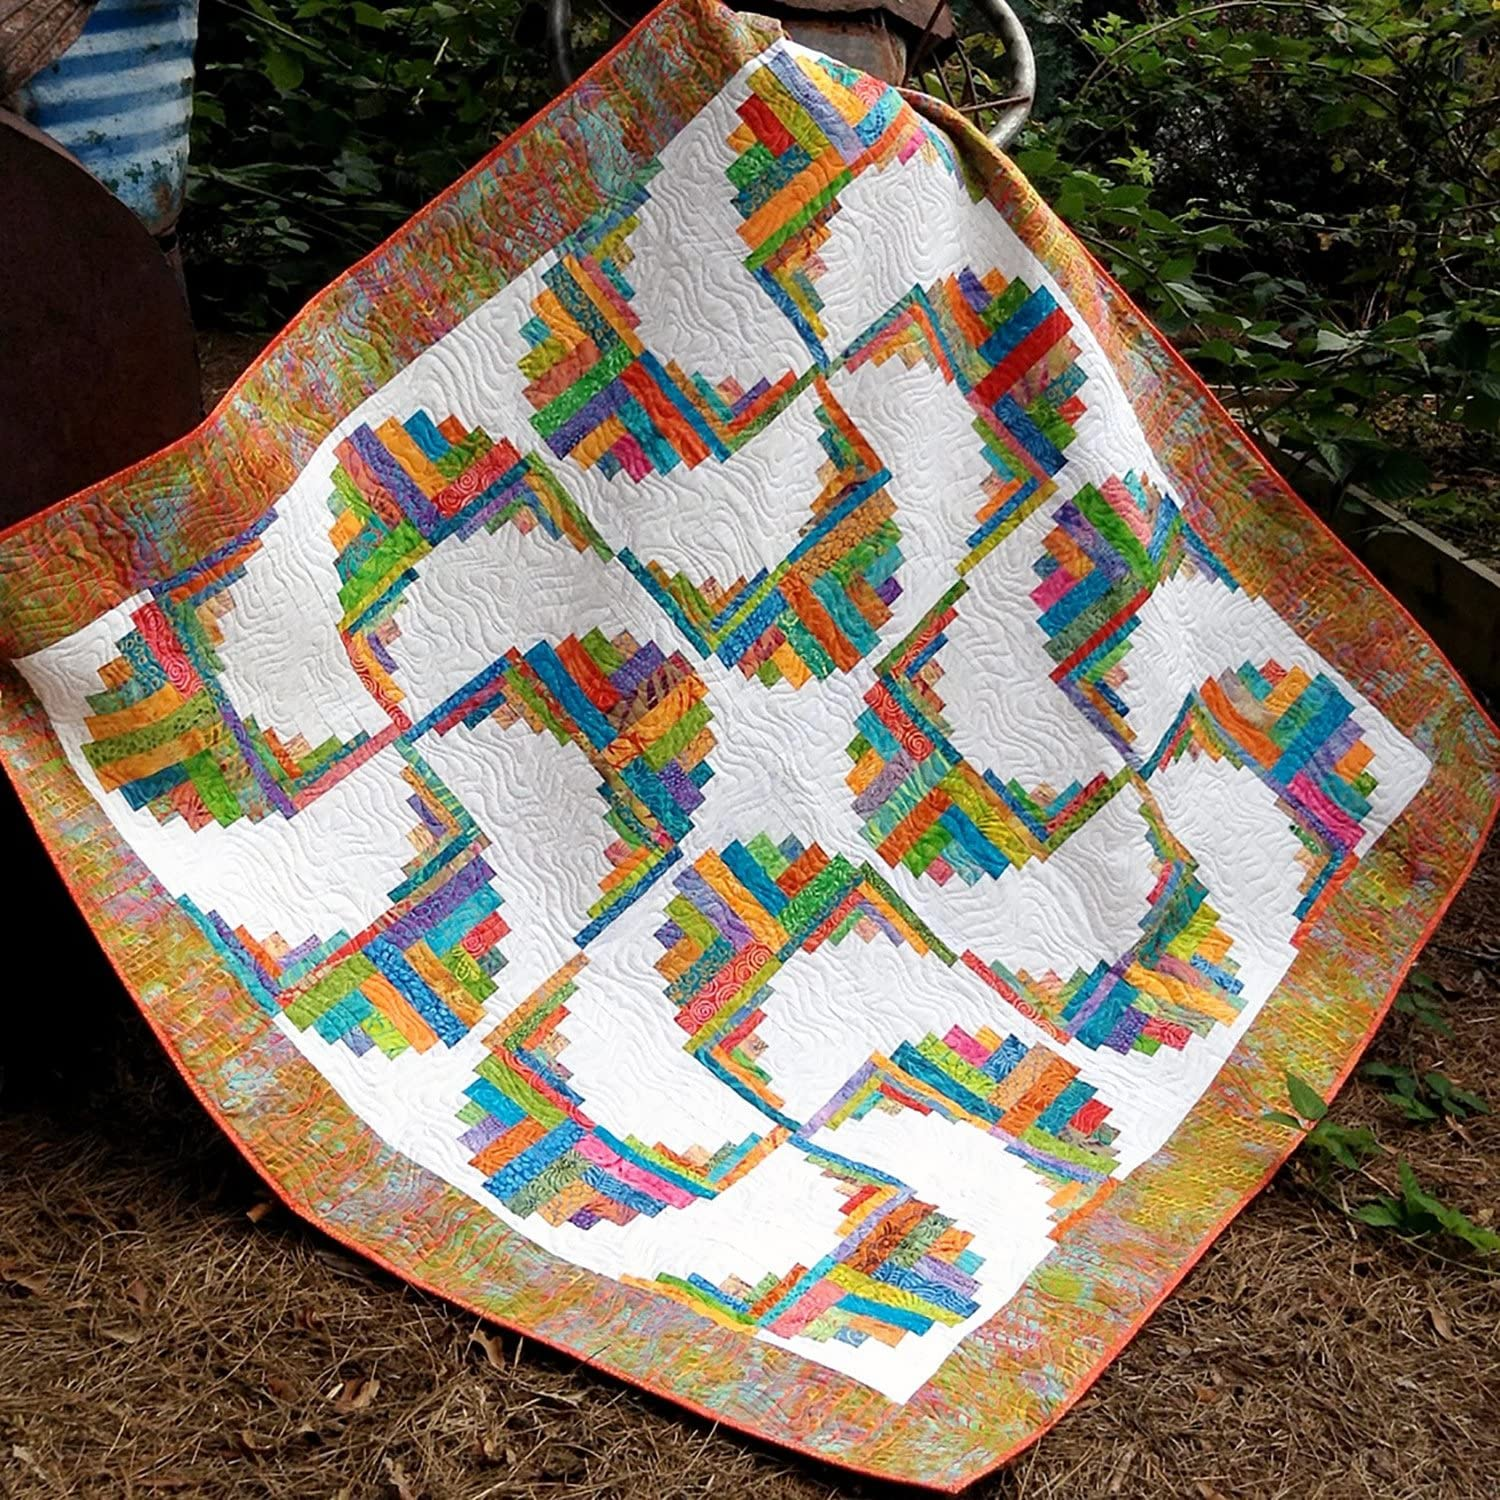 Amazon Com Rainbow Swirls Curvy Log Cabin Quilt Pattern By Cut Loose Press And Natural Comforts Quilting